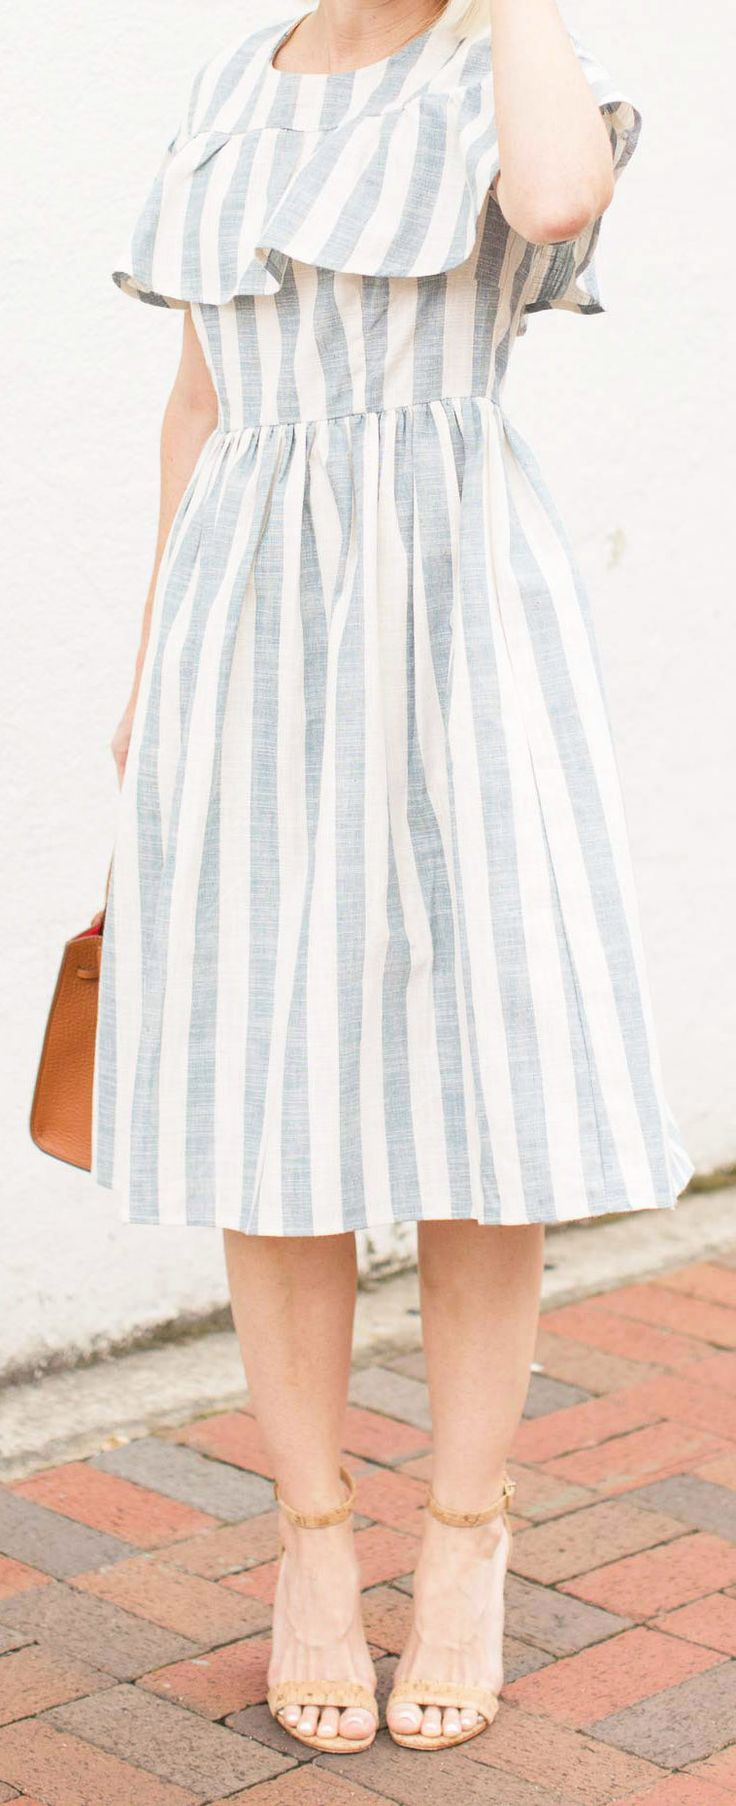 Stripe Sundress - Rachel Parcell Santorini Dress - Blue and White Stripes - Poor Little It Girl